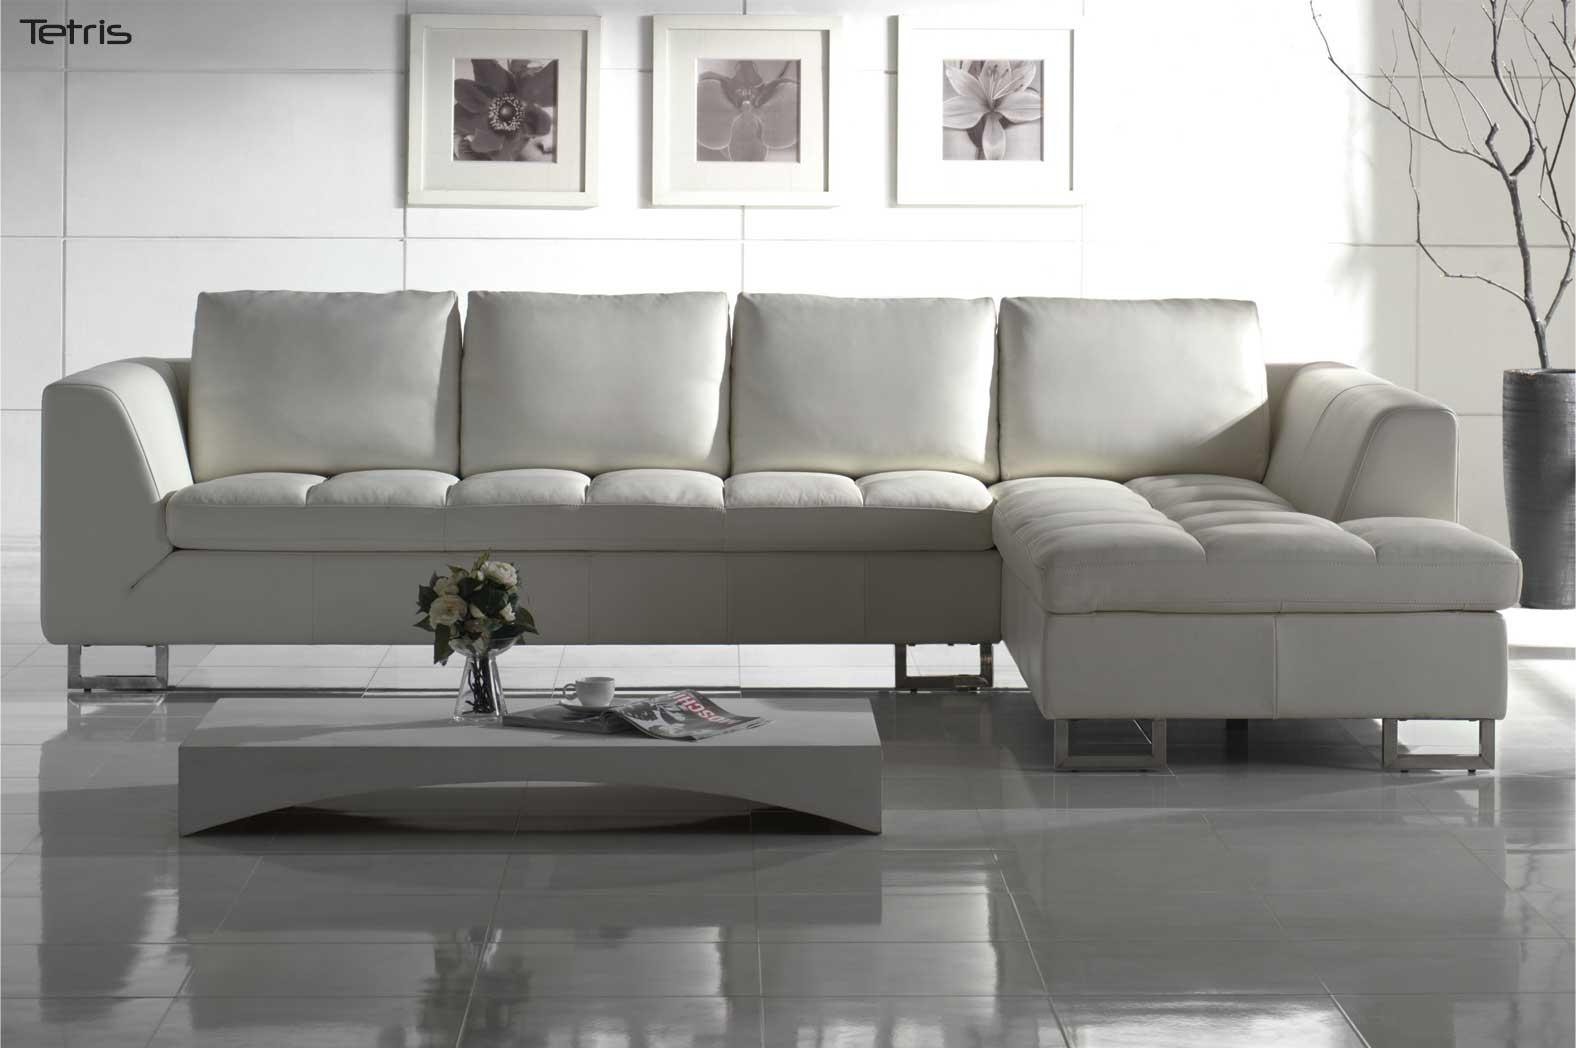 My red leather chair had faded to a colorless gray. White Leather Sectional Sofa - Blending Contemporary ...